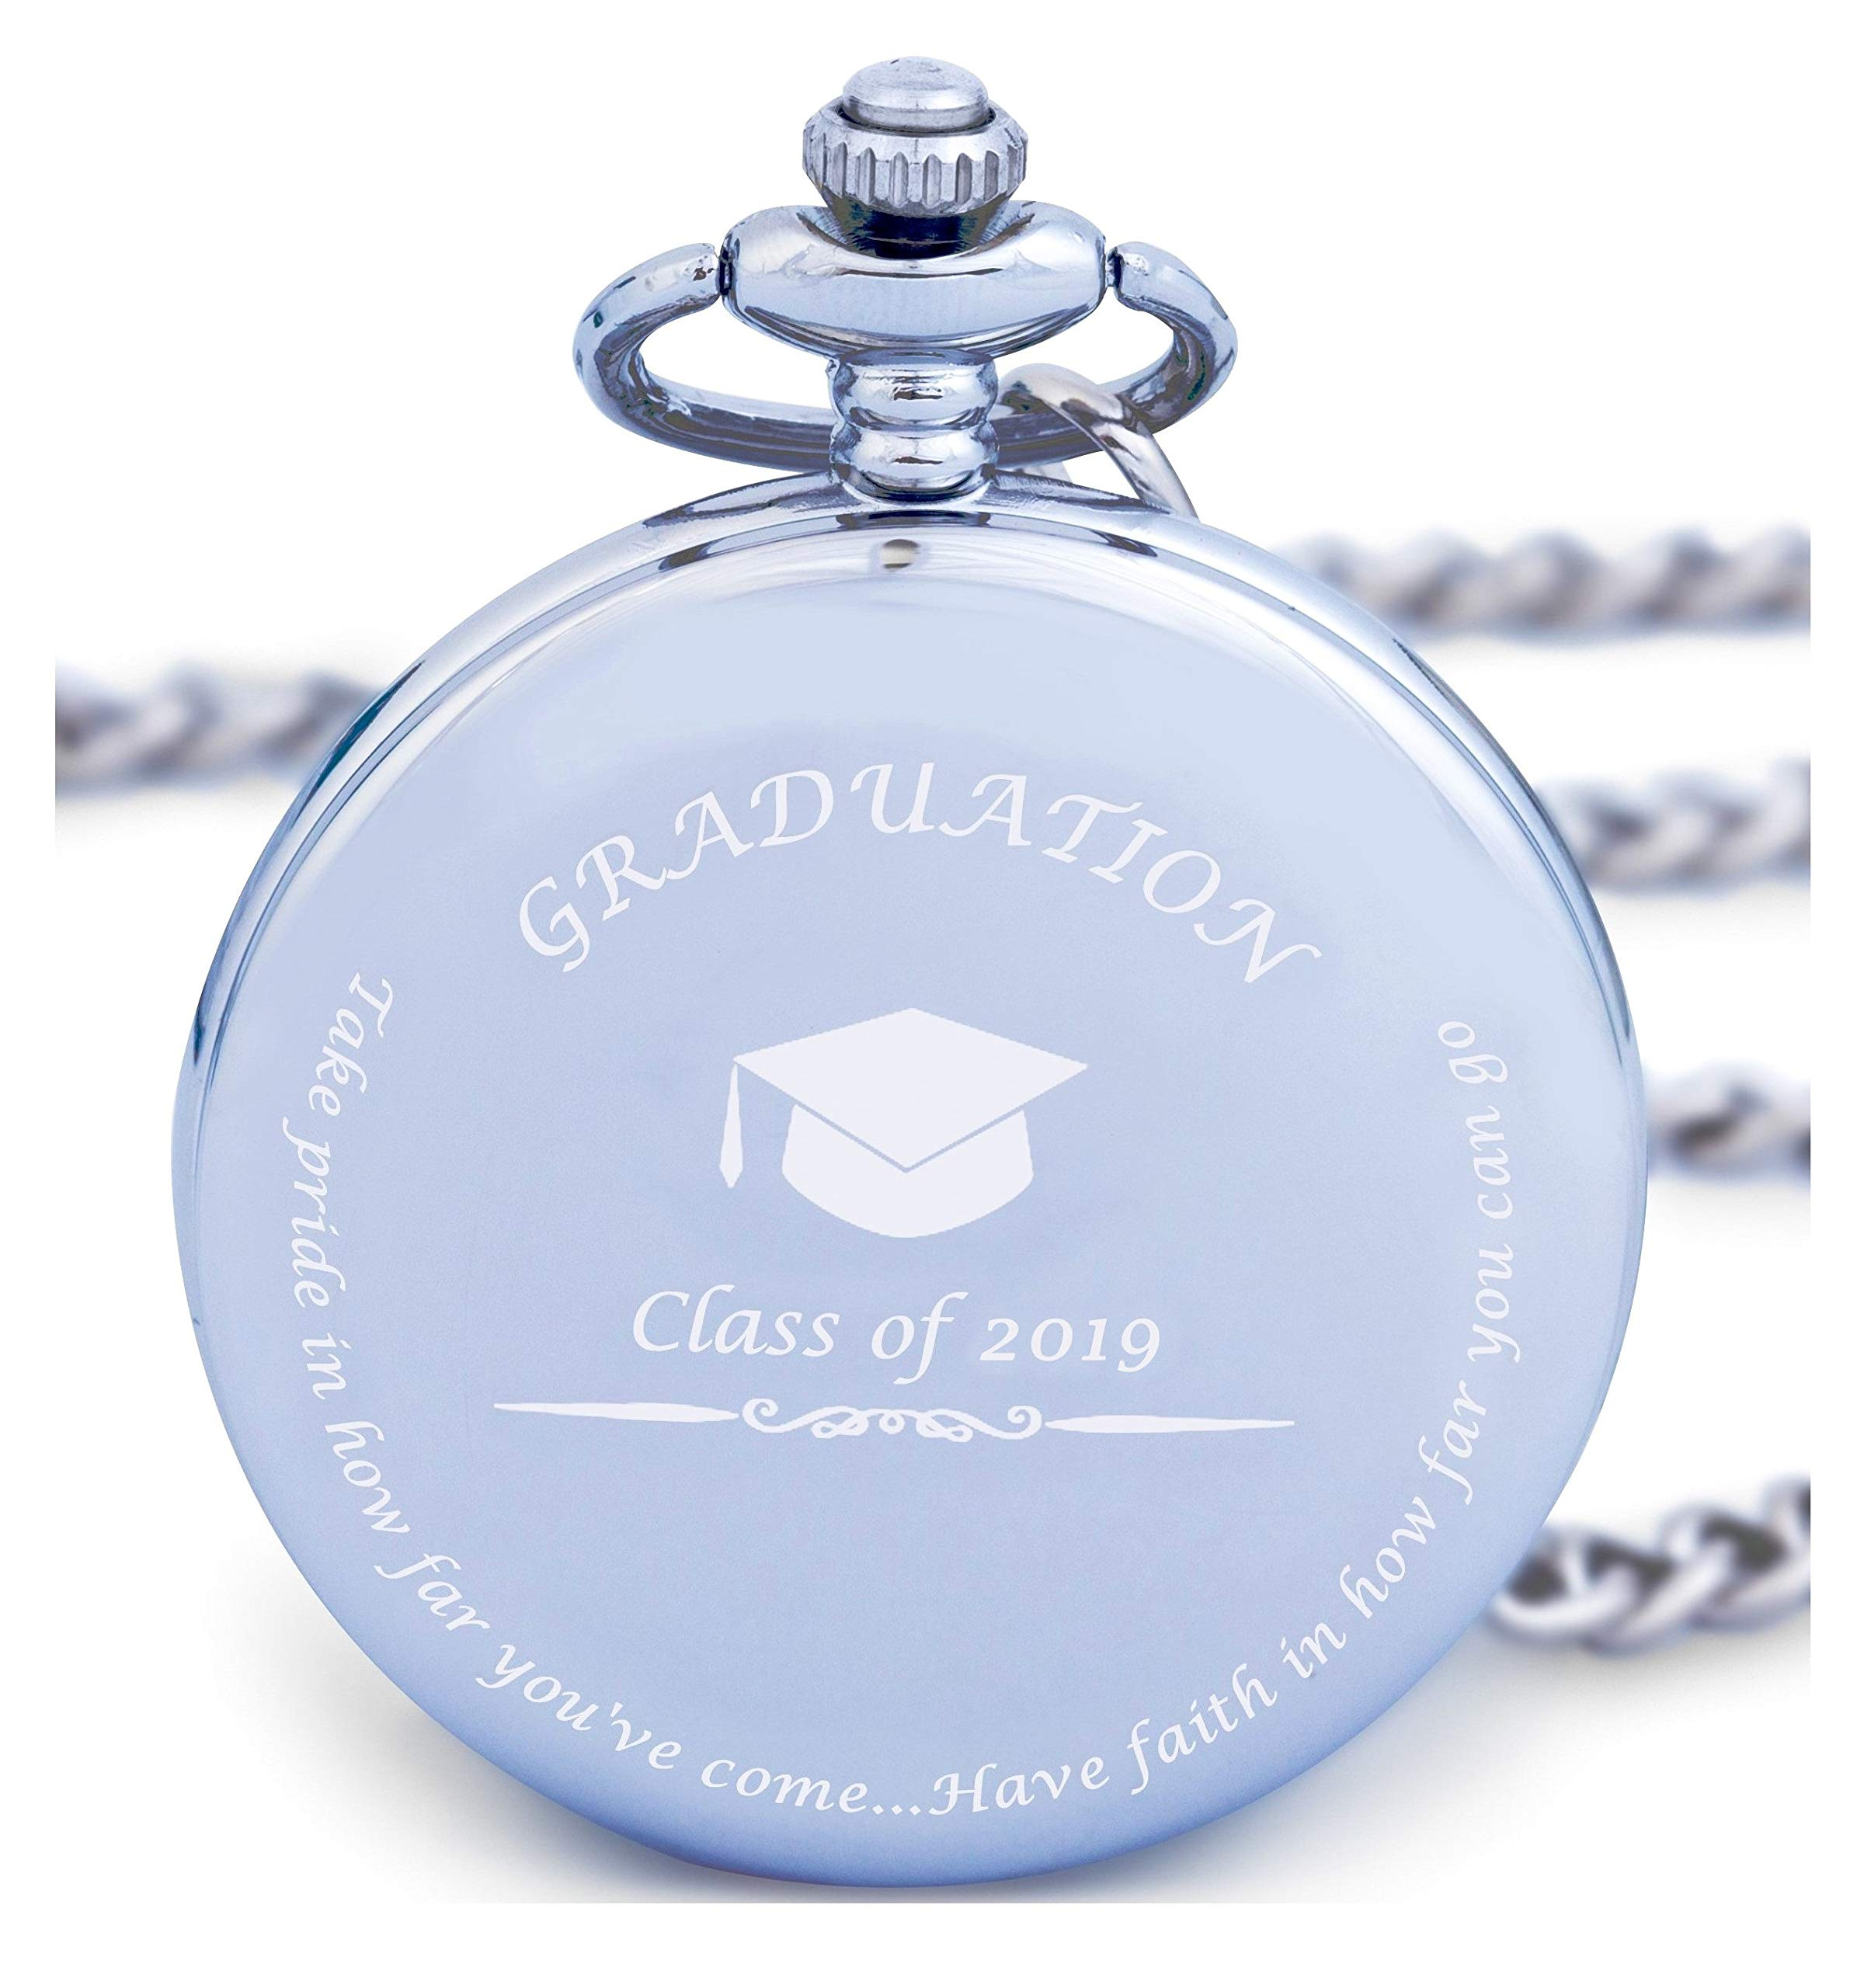 Graduation Gifts for Him - Pocket Watch - Engraved 'Class of 2019' - Perfect College / High School Graduation Gift or Present for Son | Him in 2019